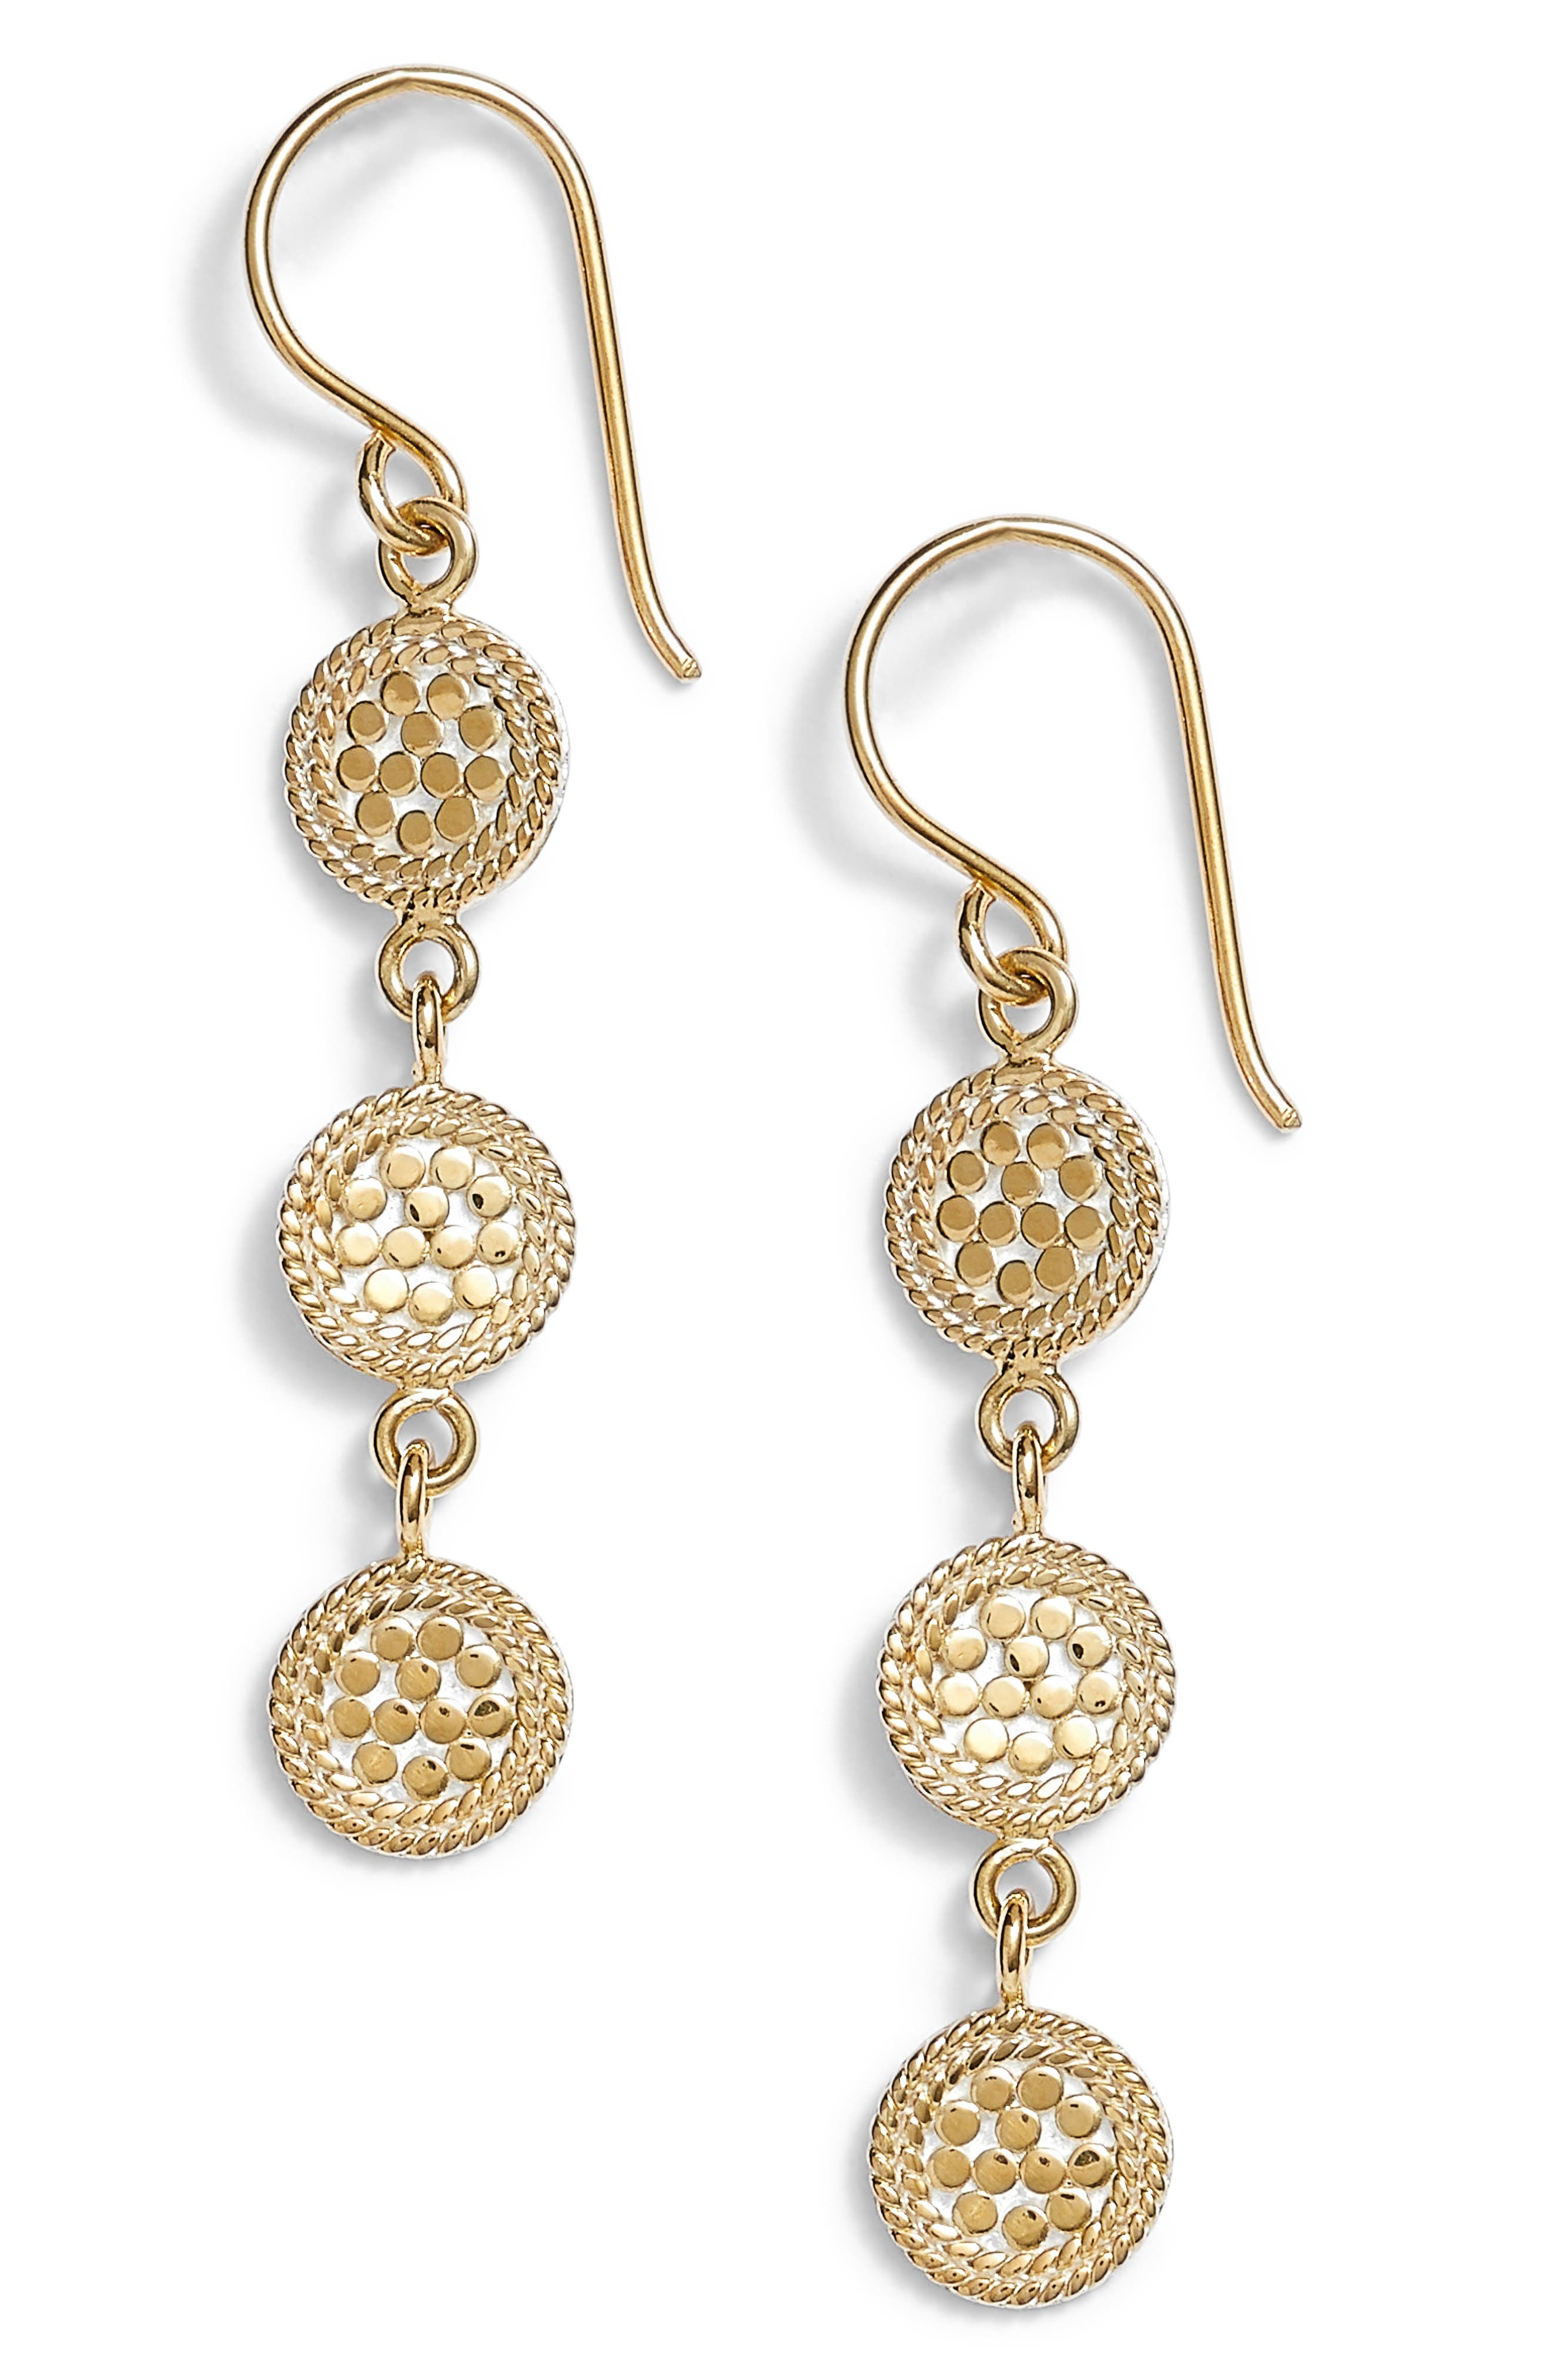 Gold Plate Triple Disc Drop Earrings,                             Main thumbnail 1, color,                             GOLD